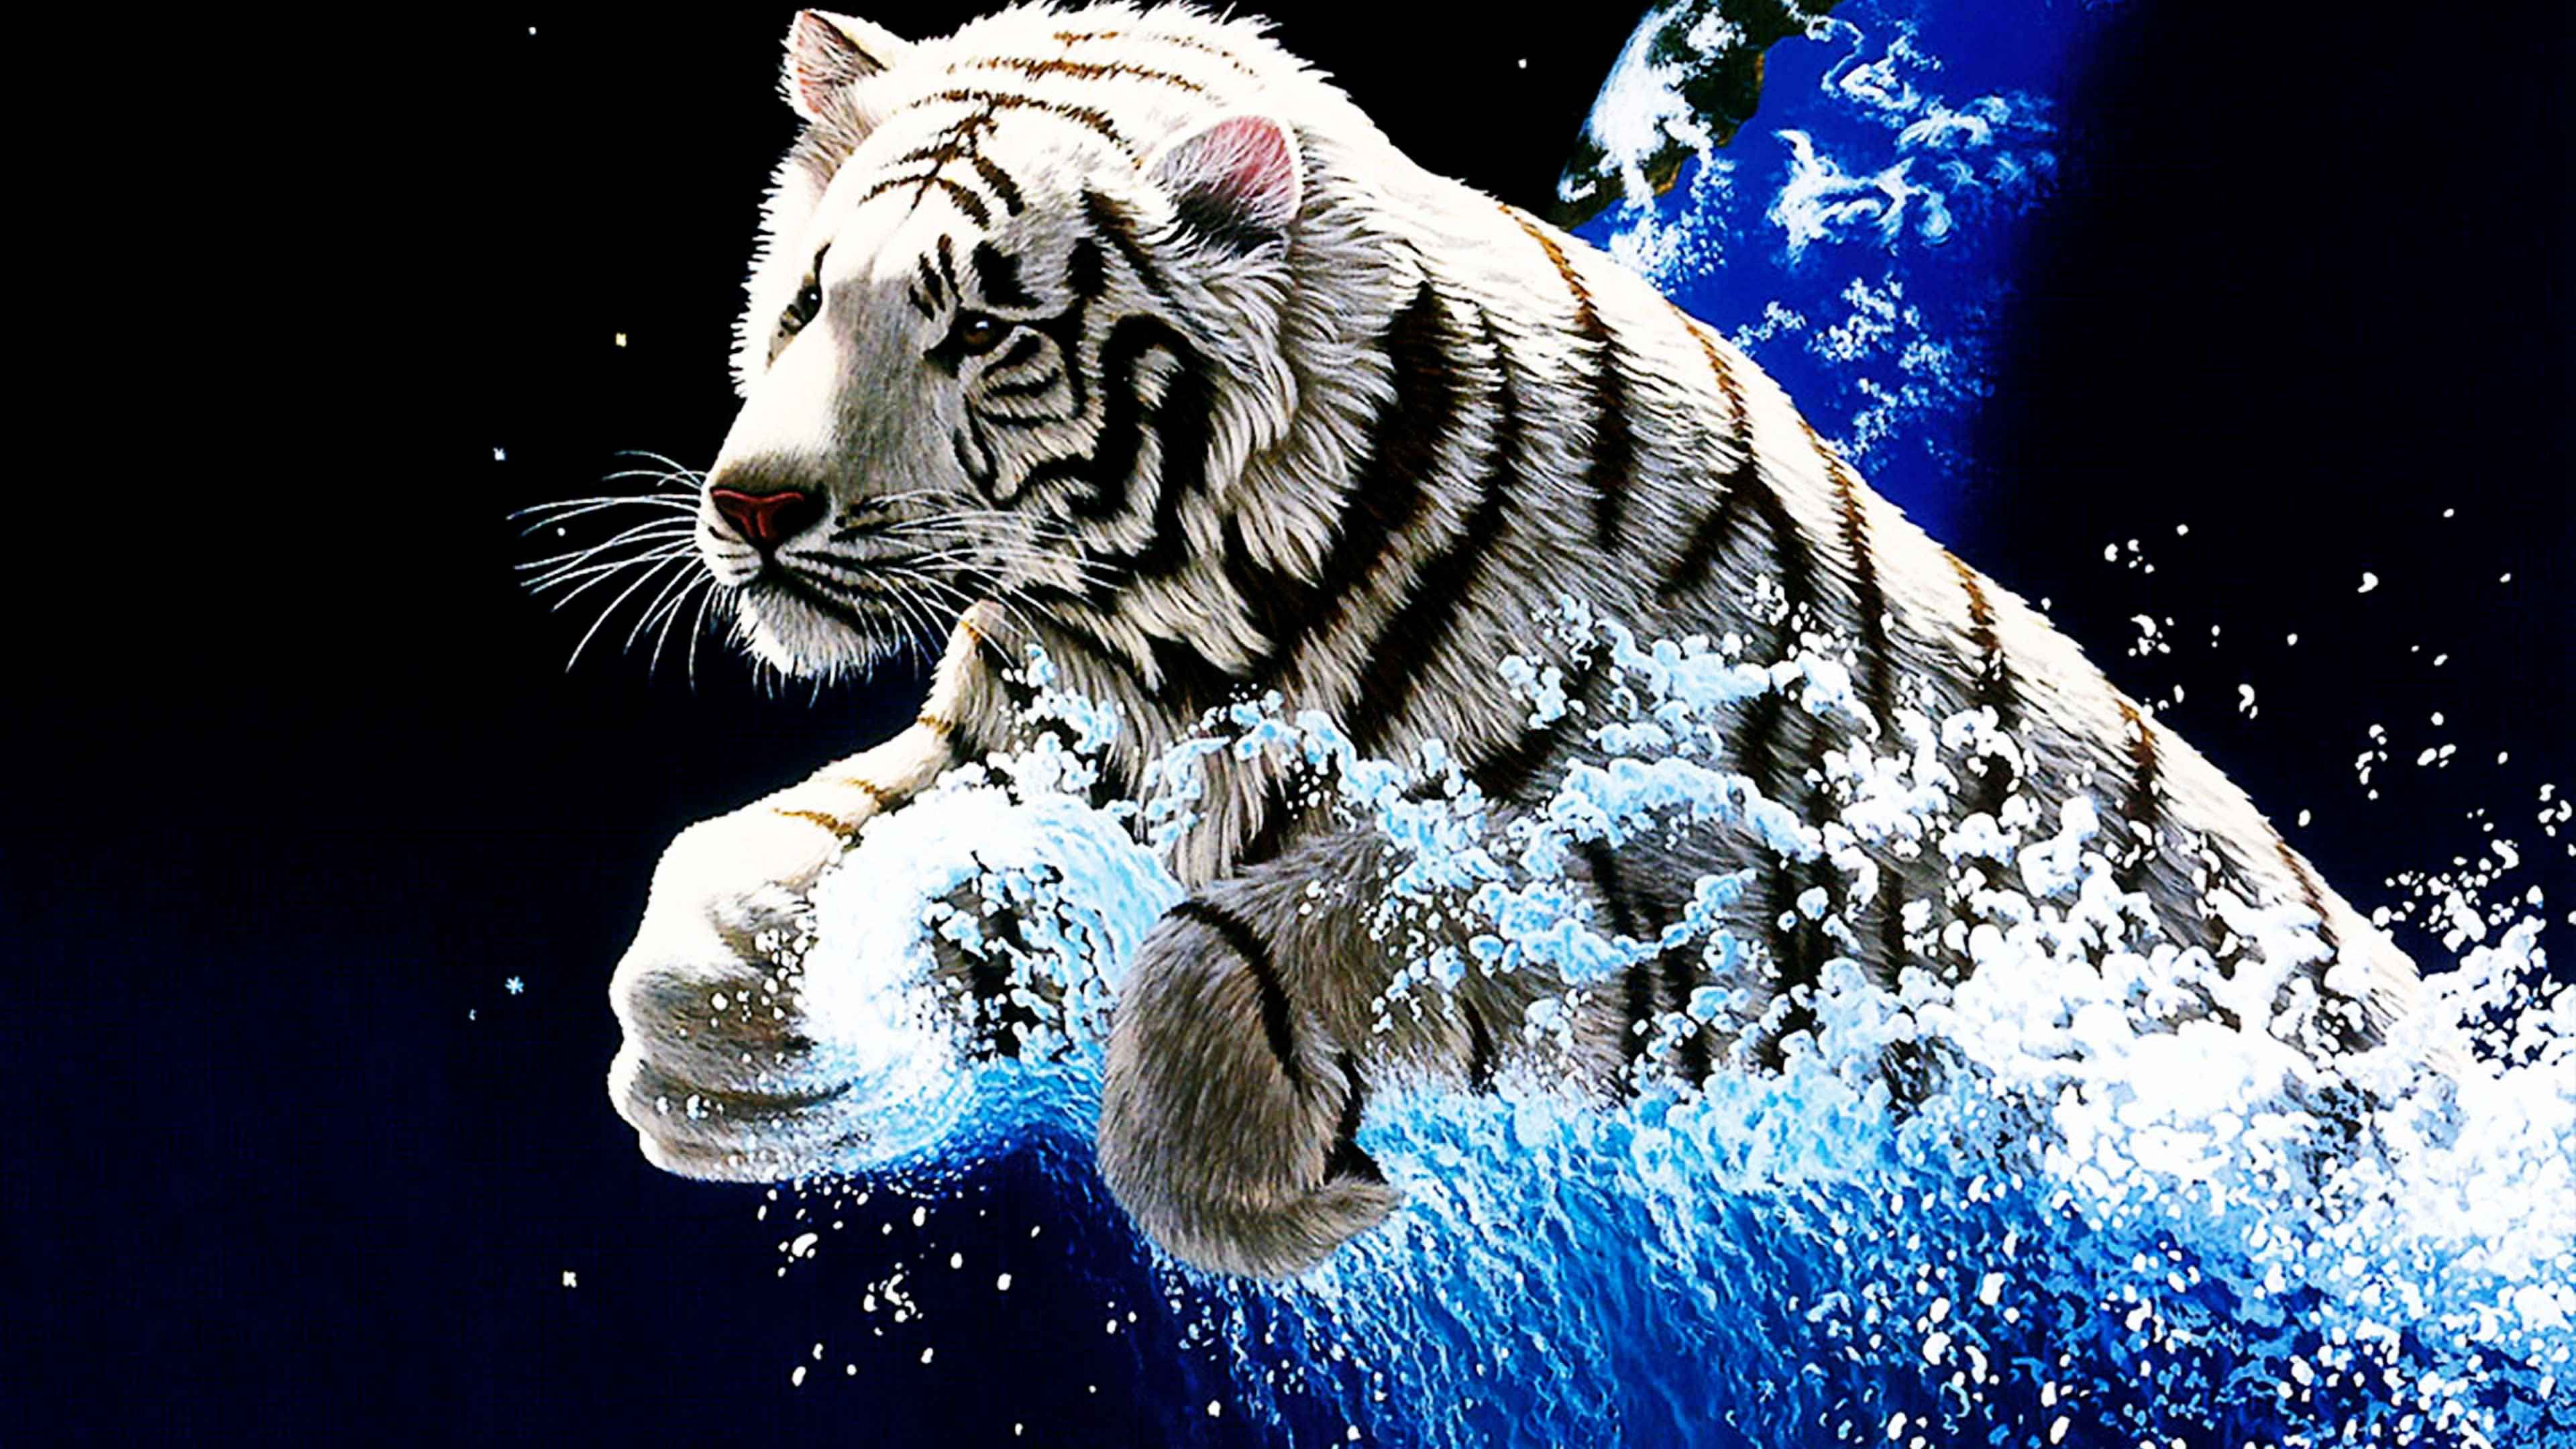 Animated 3d Tigers Wallpaper Hd Tiger Wallpaper Tiger Images